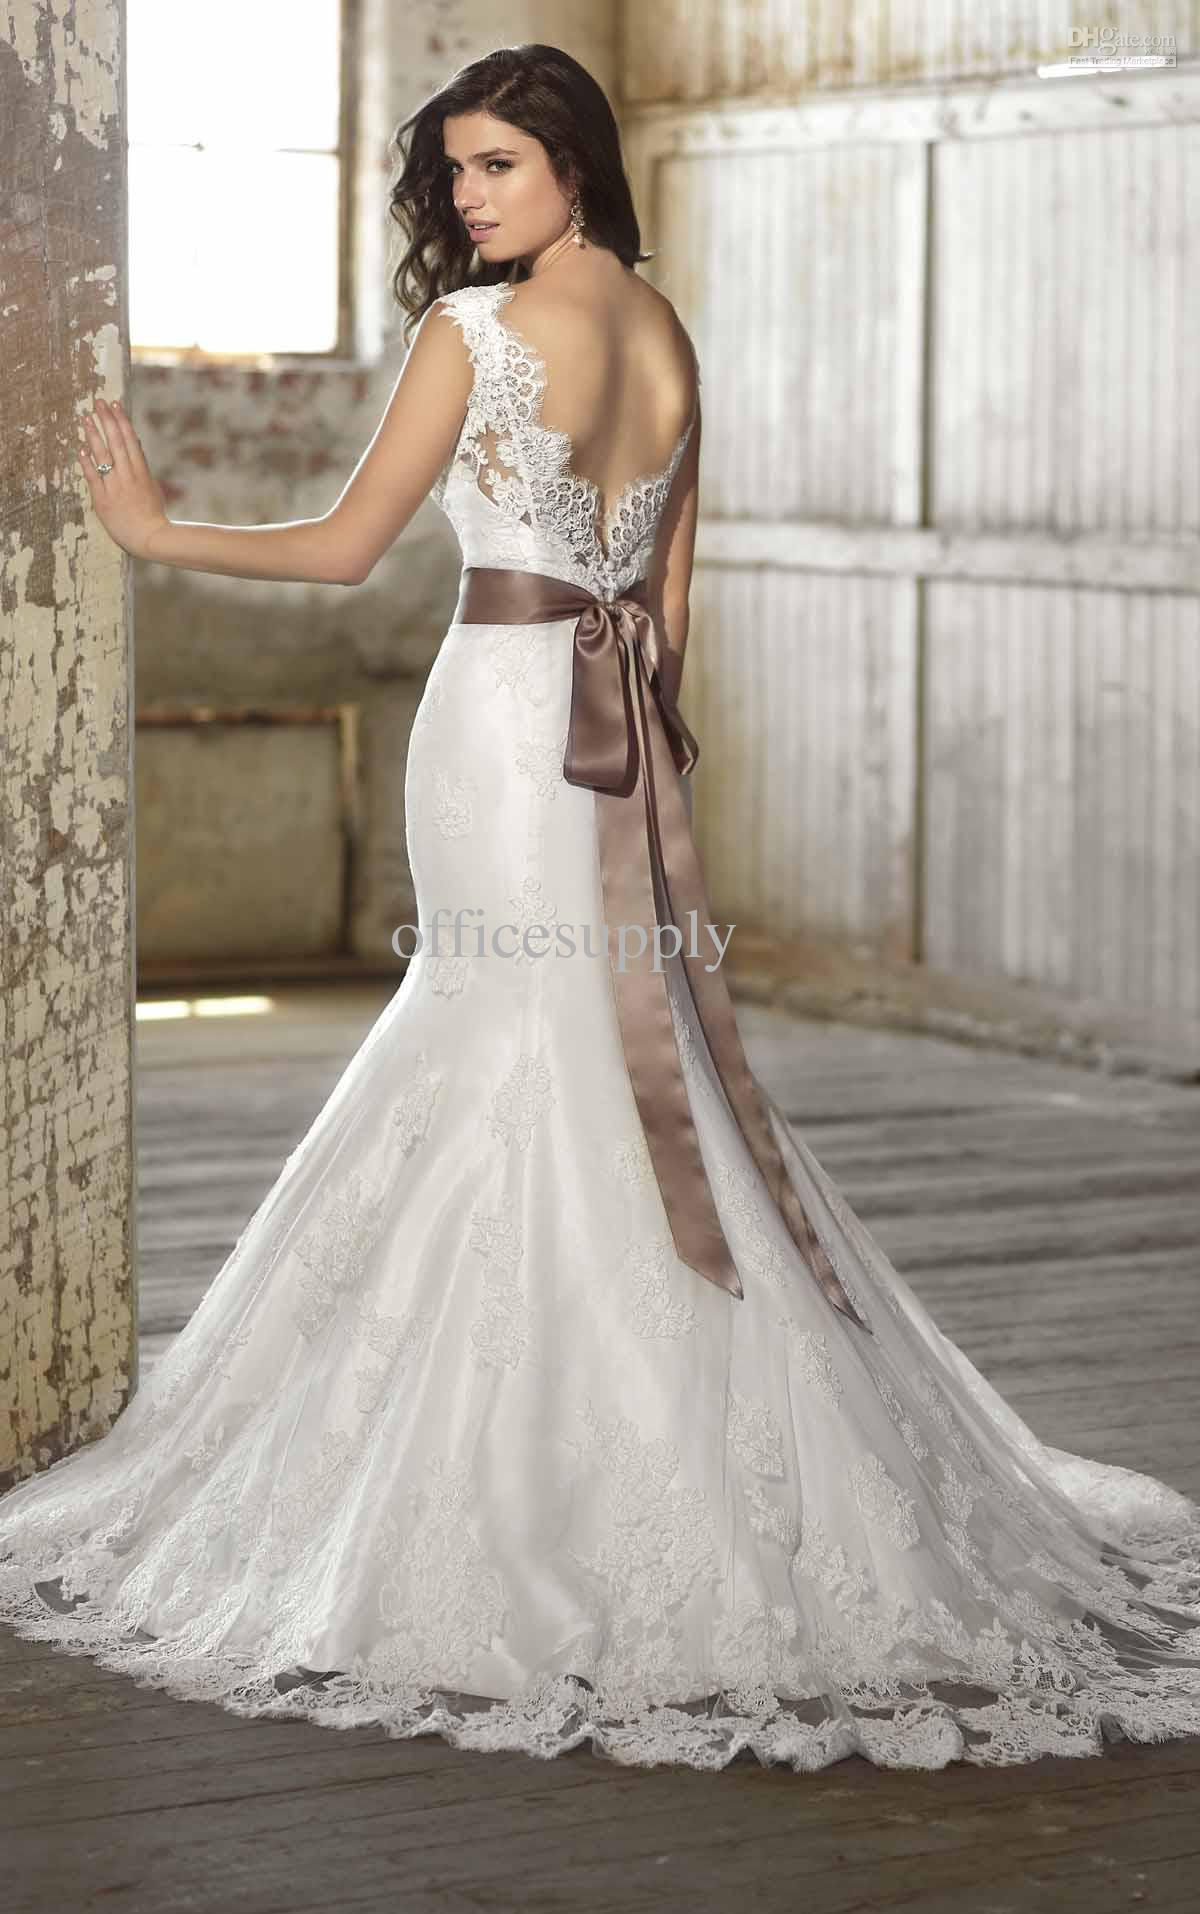 Summer Wedding Gown Dress Inspiration 7